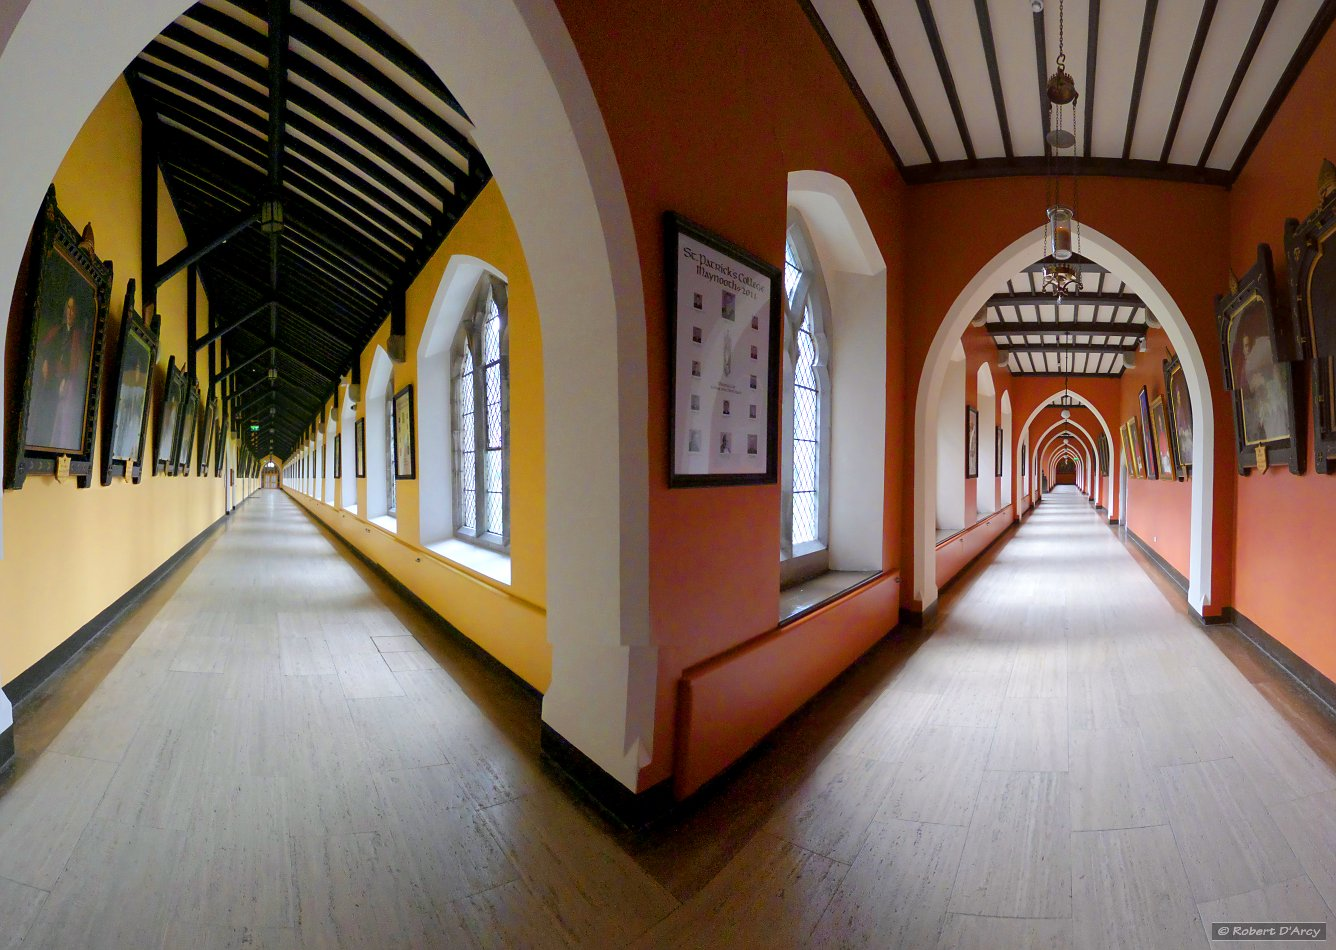 The corridors of St. Patrick's House - cylindrical projection